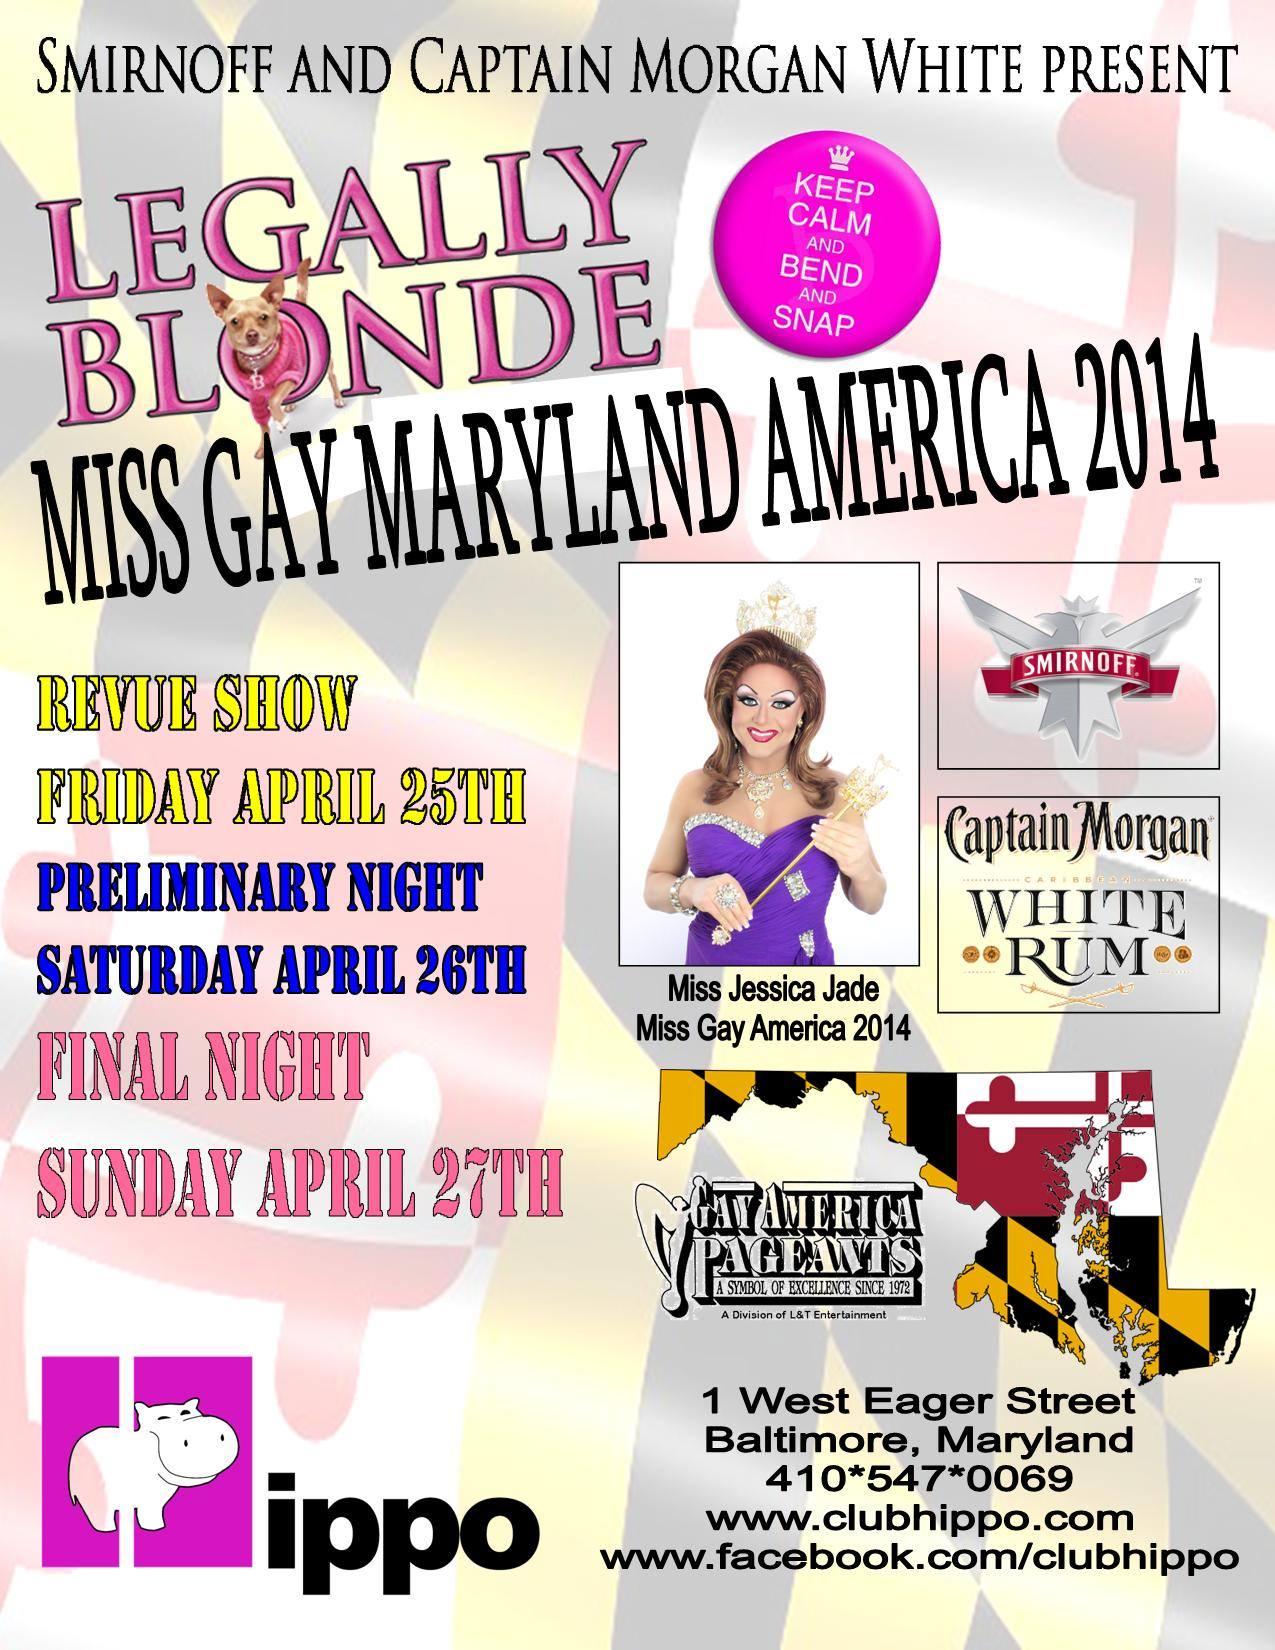 Show Ad | Miss Gay Maryland America | Club Hippo (Baltimore, Maryland) | 4/25-4/27/2014